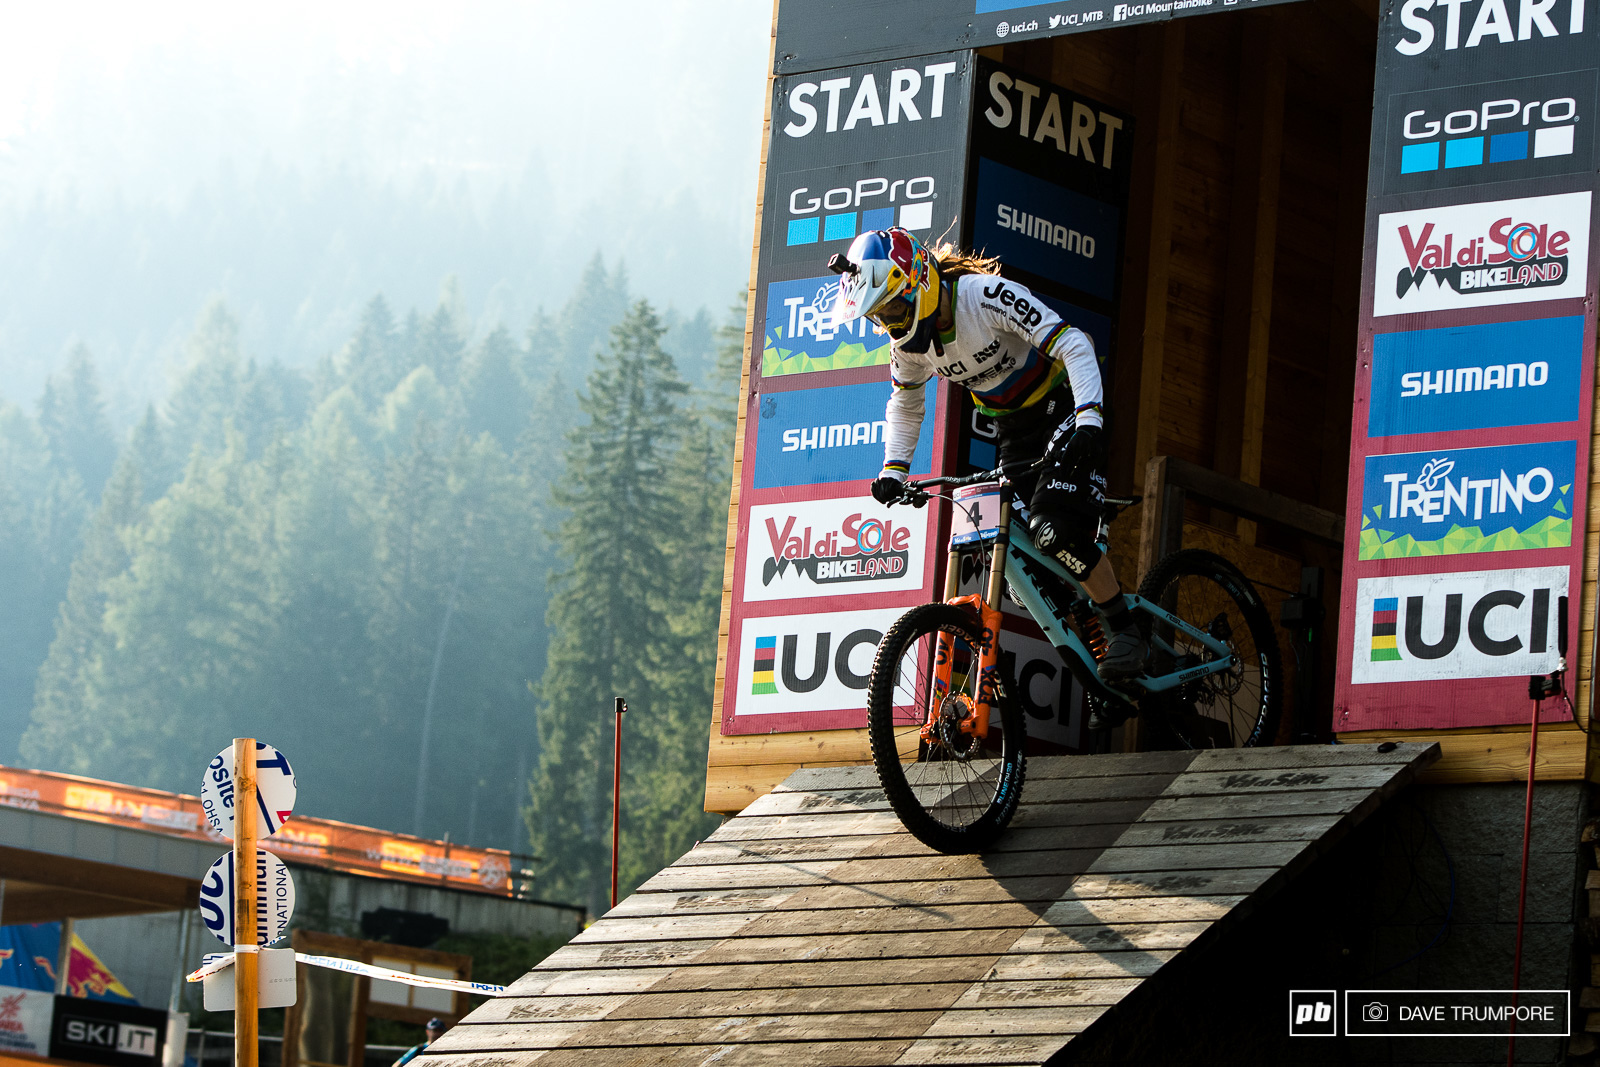 Rachel Atherton rolls out of the start gate for the final WC race of the season.